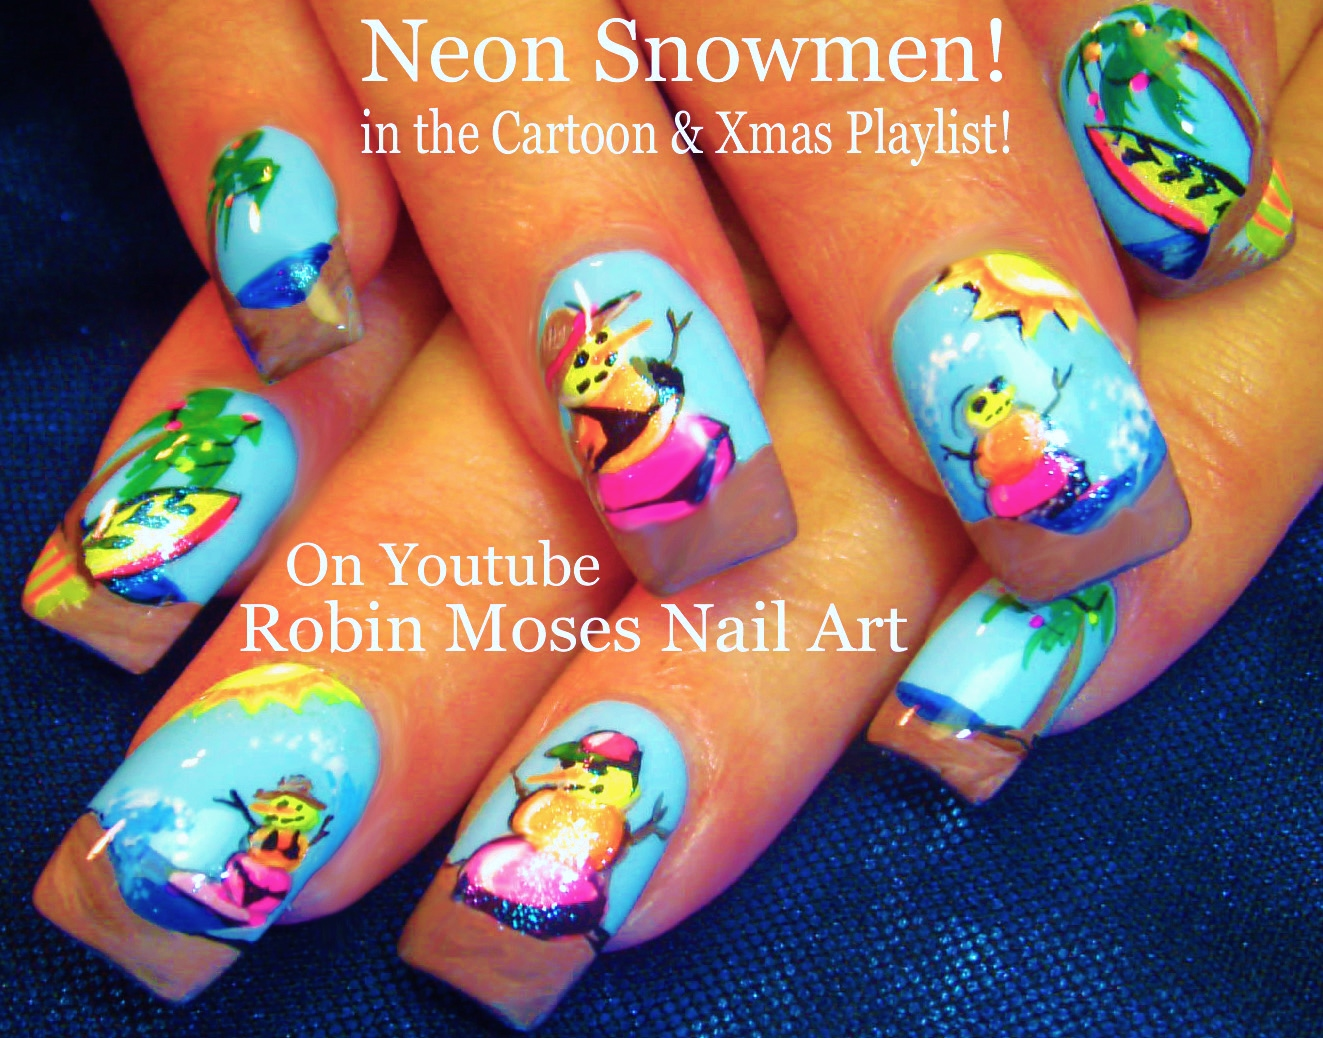 Neon Summer Snowman Nail Design Tutorial with Lots of other fun Summer Nail  Art Trends!!! - Nail Art By Robin Moses: Neon Summer Snowman Nail Design Tutorial